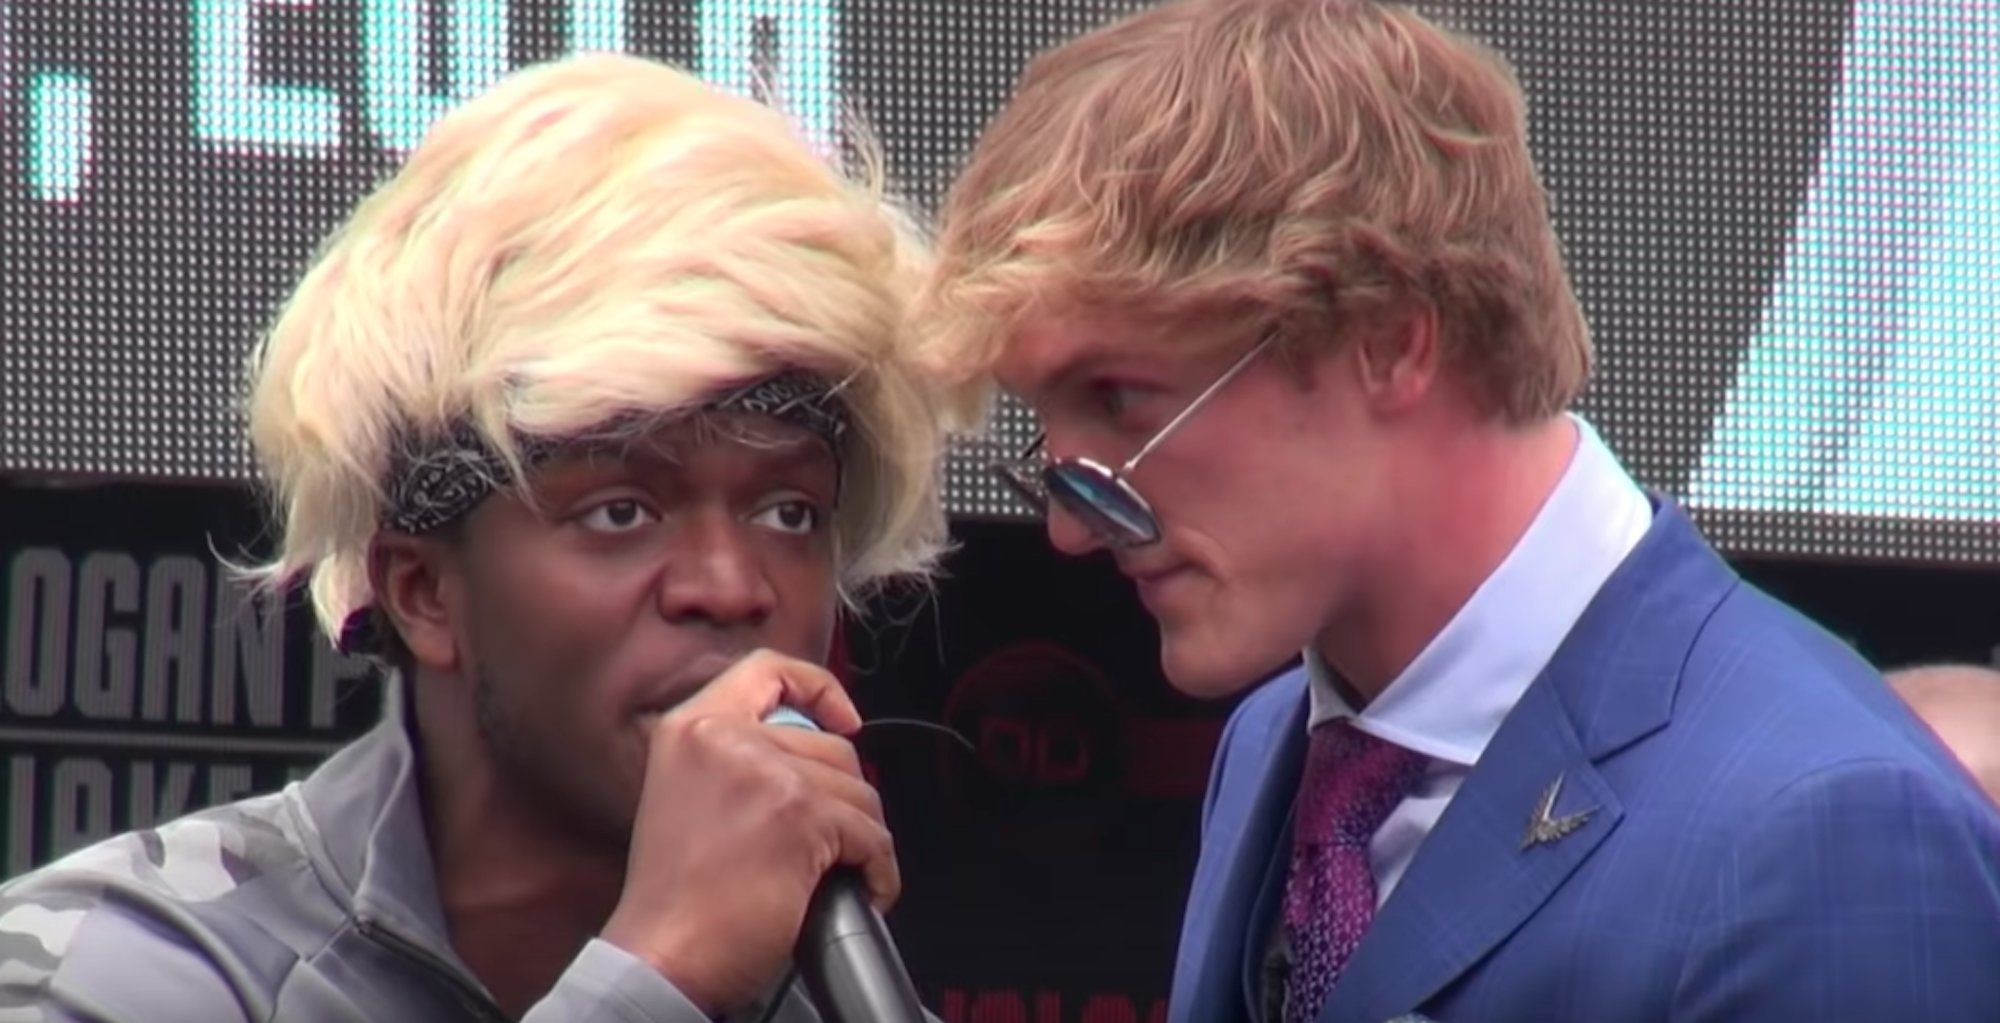 ksi vs logan paul post fight